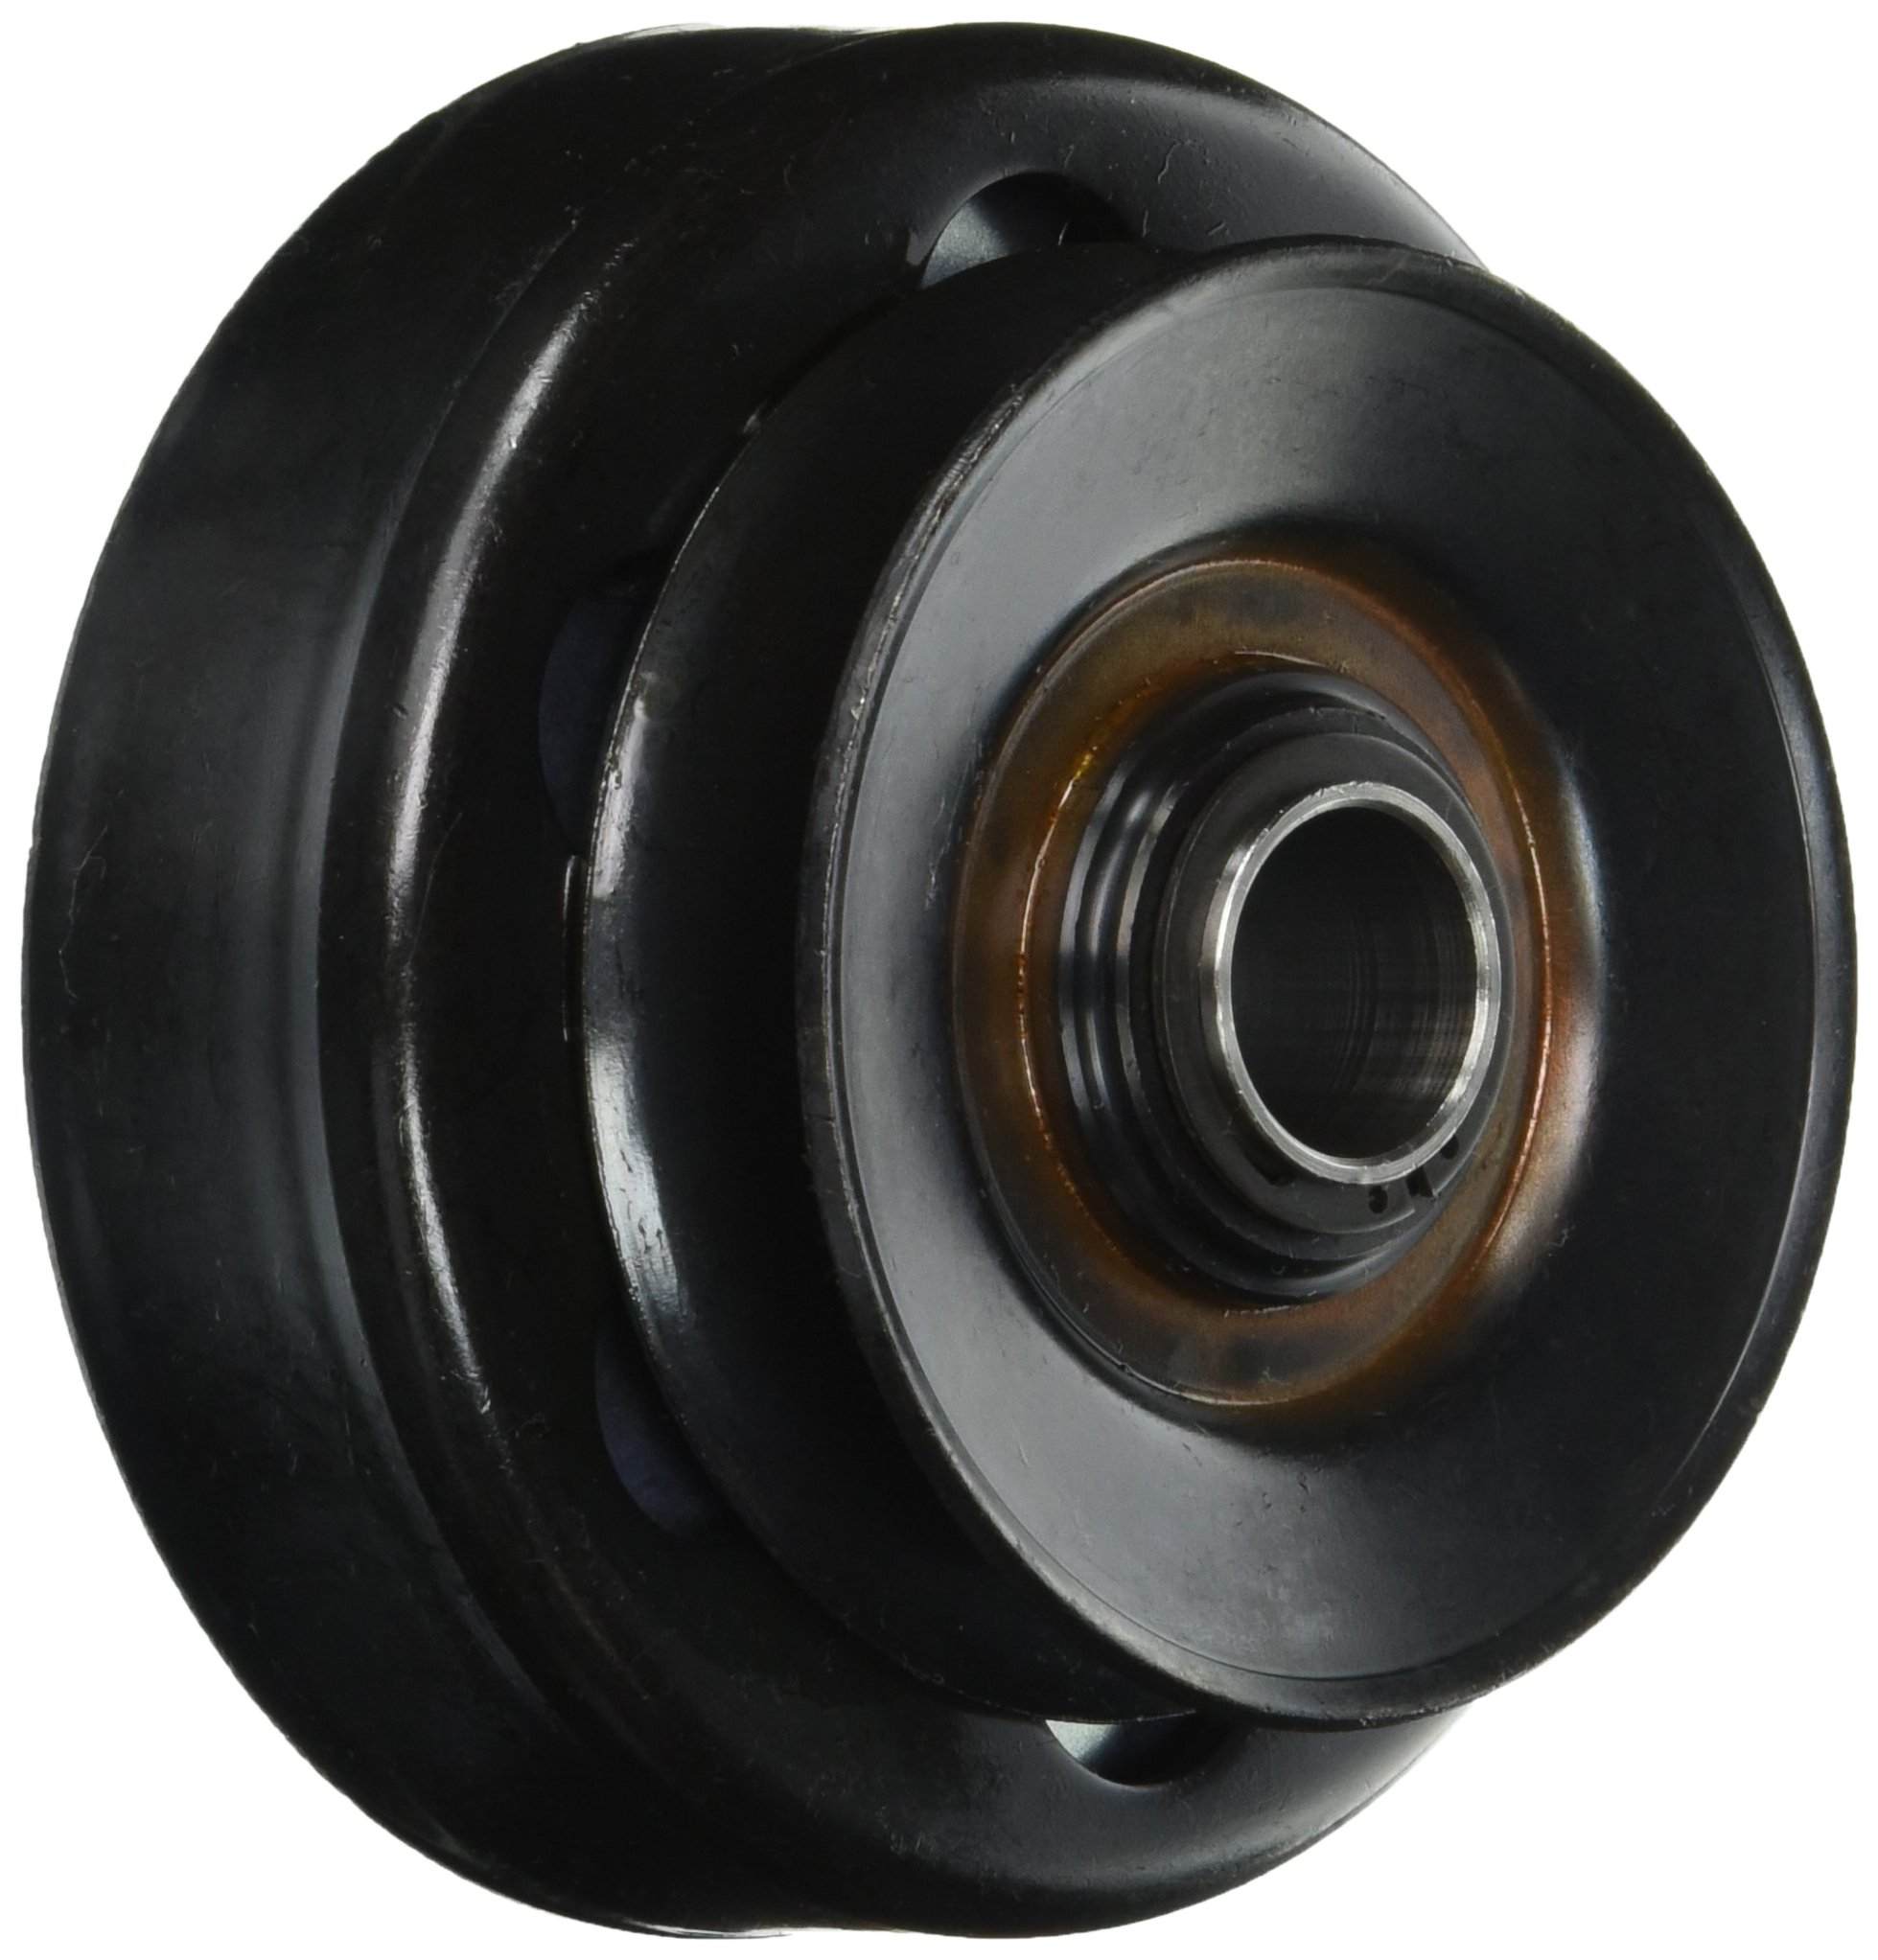 Stens 255-315 Pulley Clutch, 3/4'' Bore